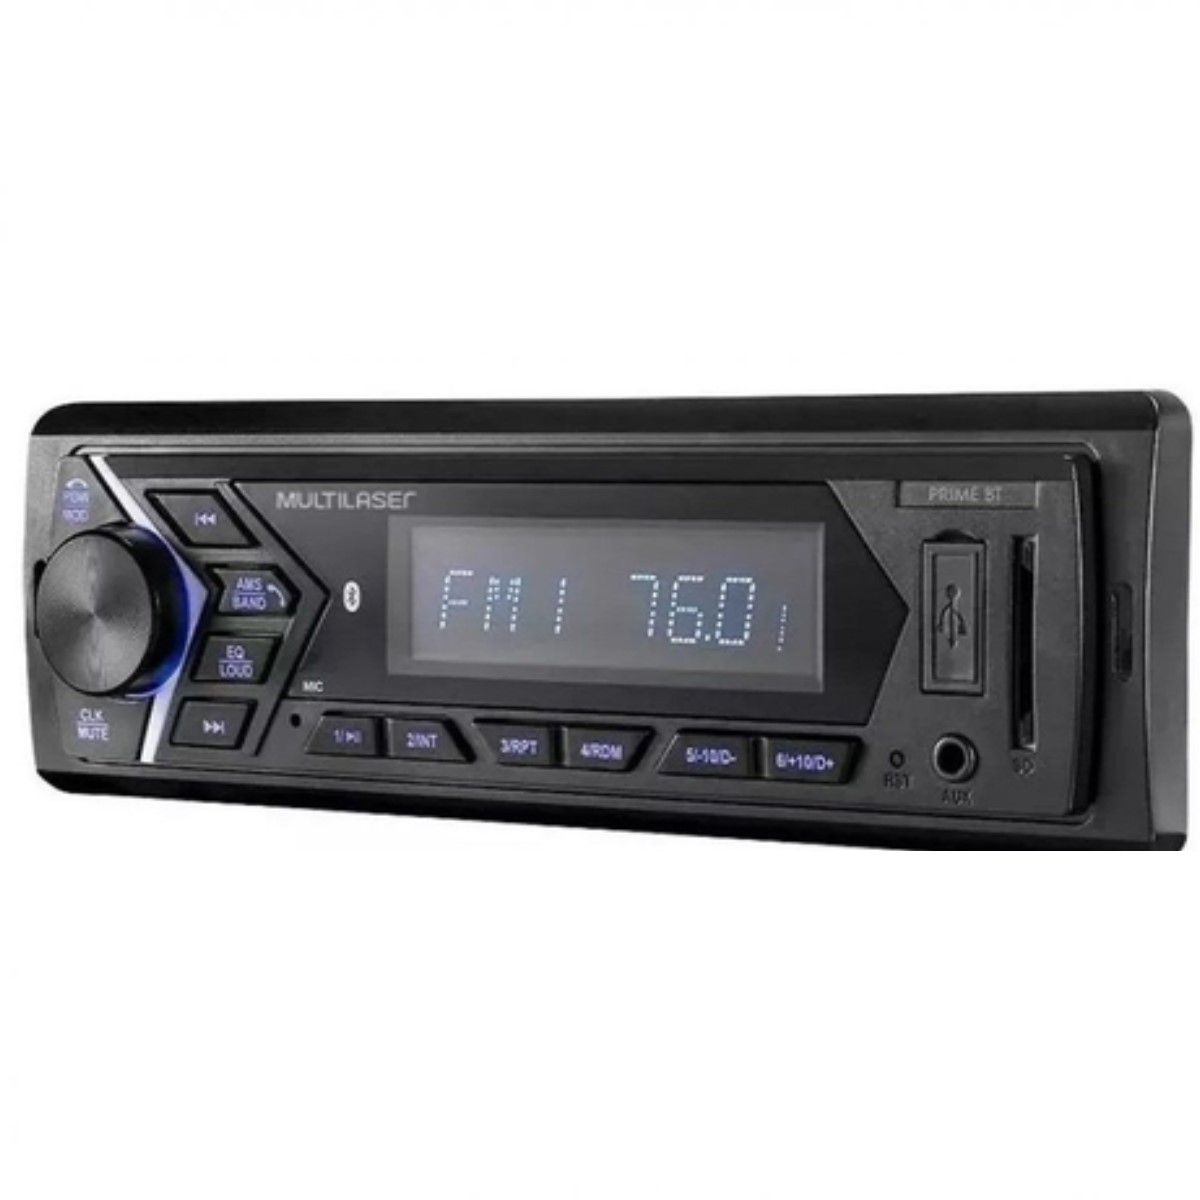 AUTORADIO PRIME BLUETOOTH MP3 LCD 4X45WRMS FM/SD/USB/AUX APP (05)